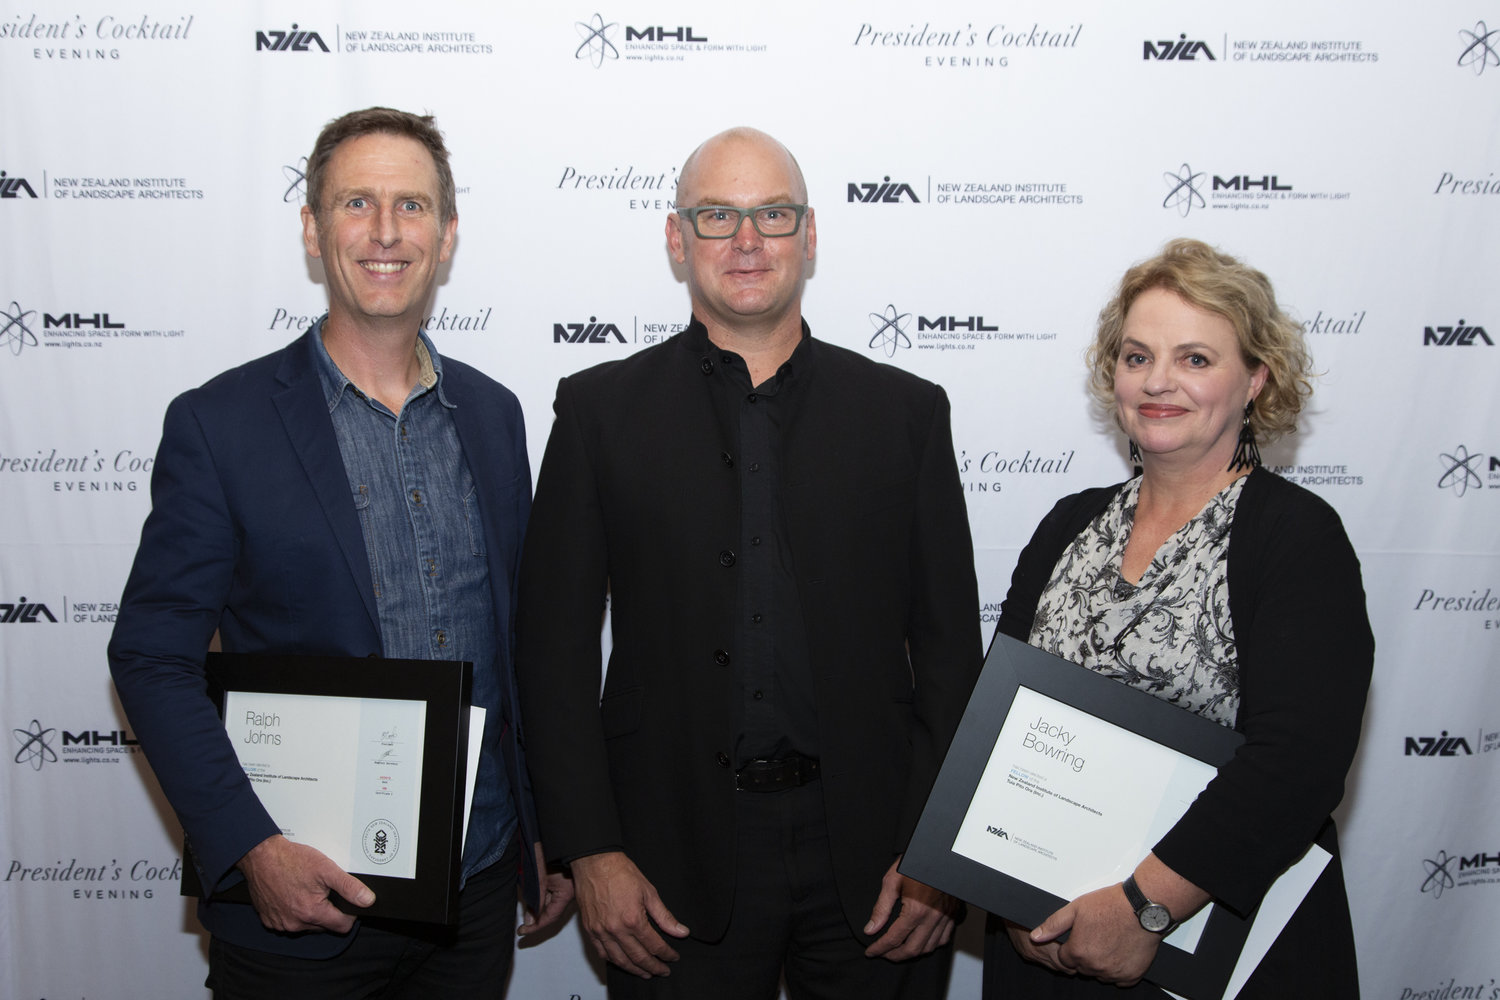 Ralph Johns (left) at the NZILA president's ingural cocktail evening in April.